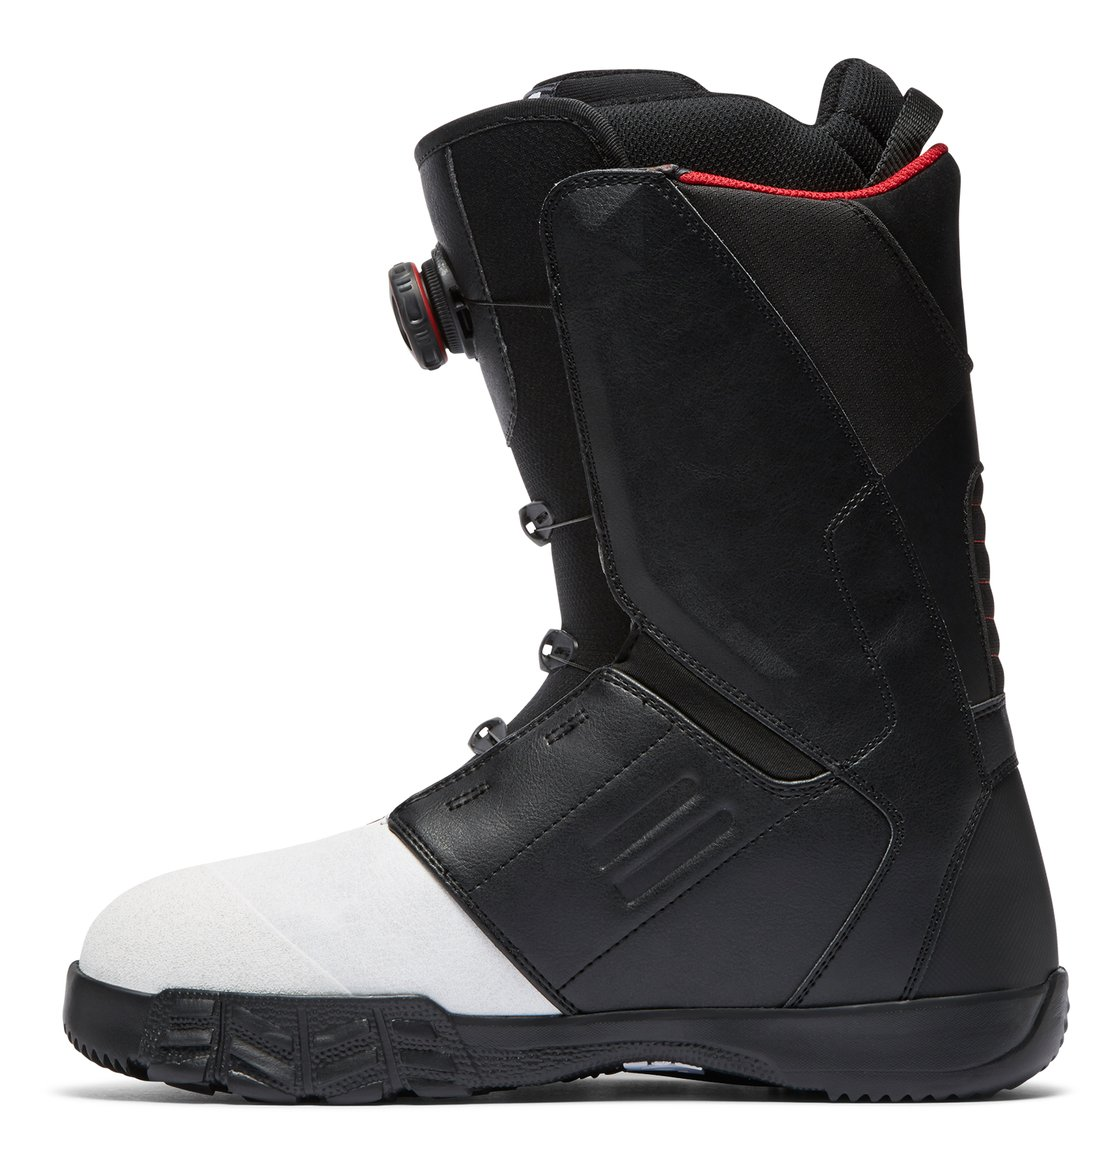 DC-Shoes-Control-BOA-Snowboard-Boots-fuer-Maenner-ADYO100030